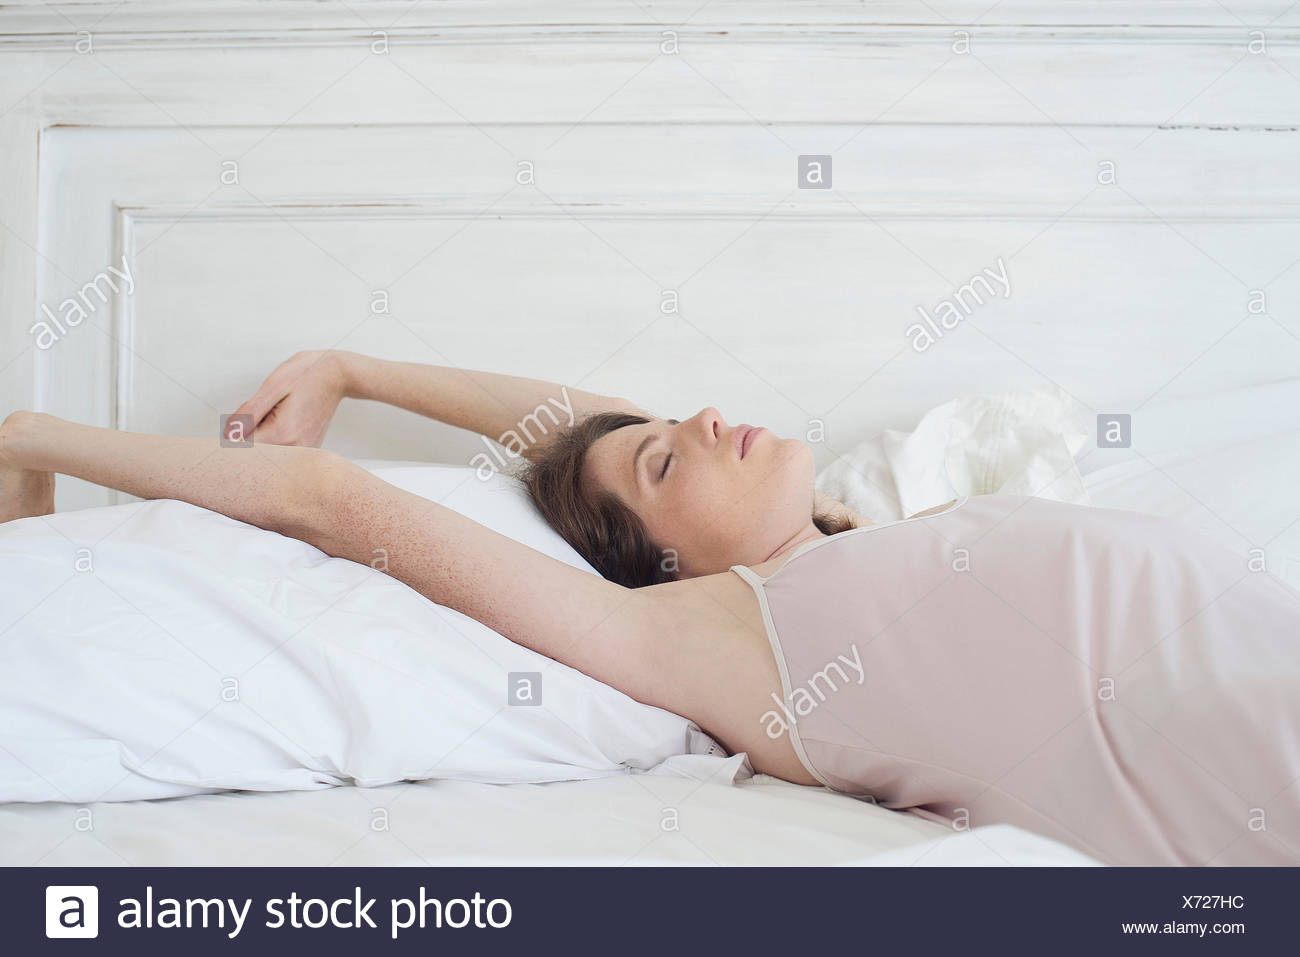 Woman lying on back in bed stretching - Stock Image